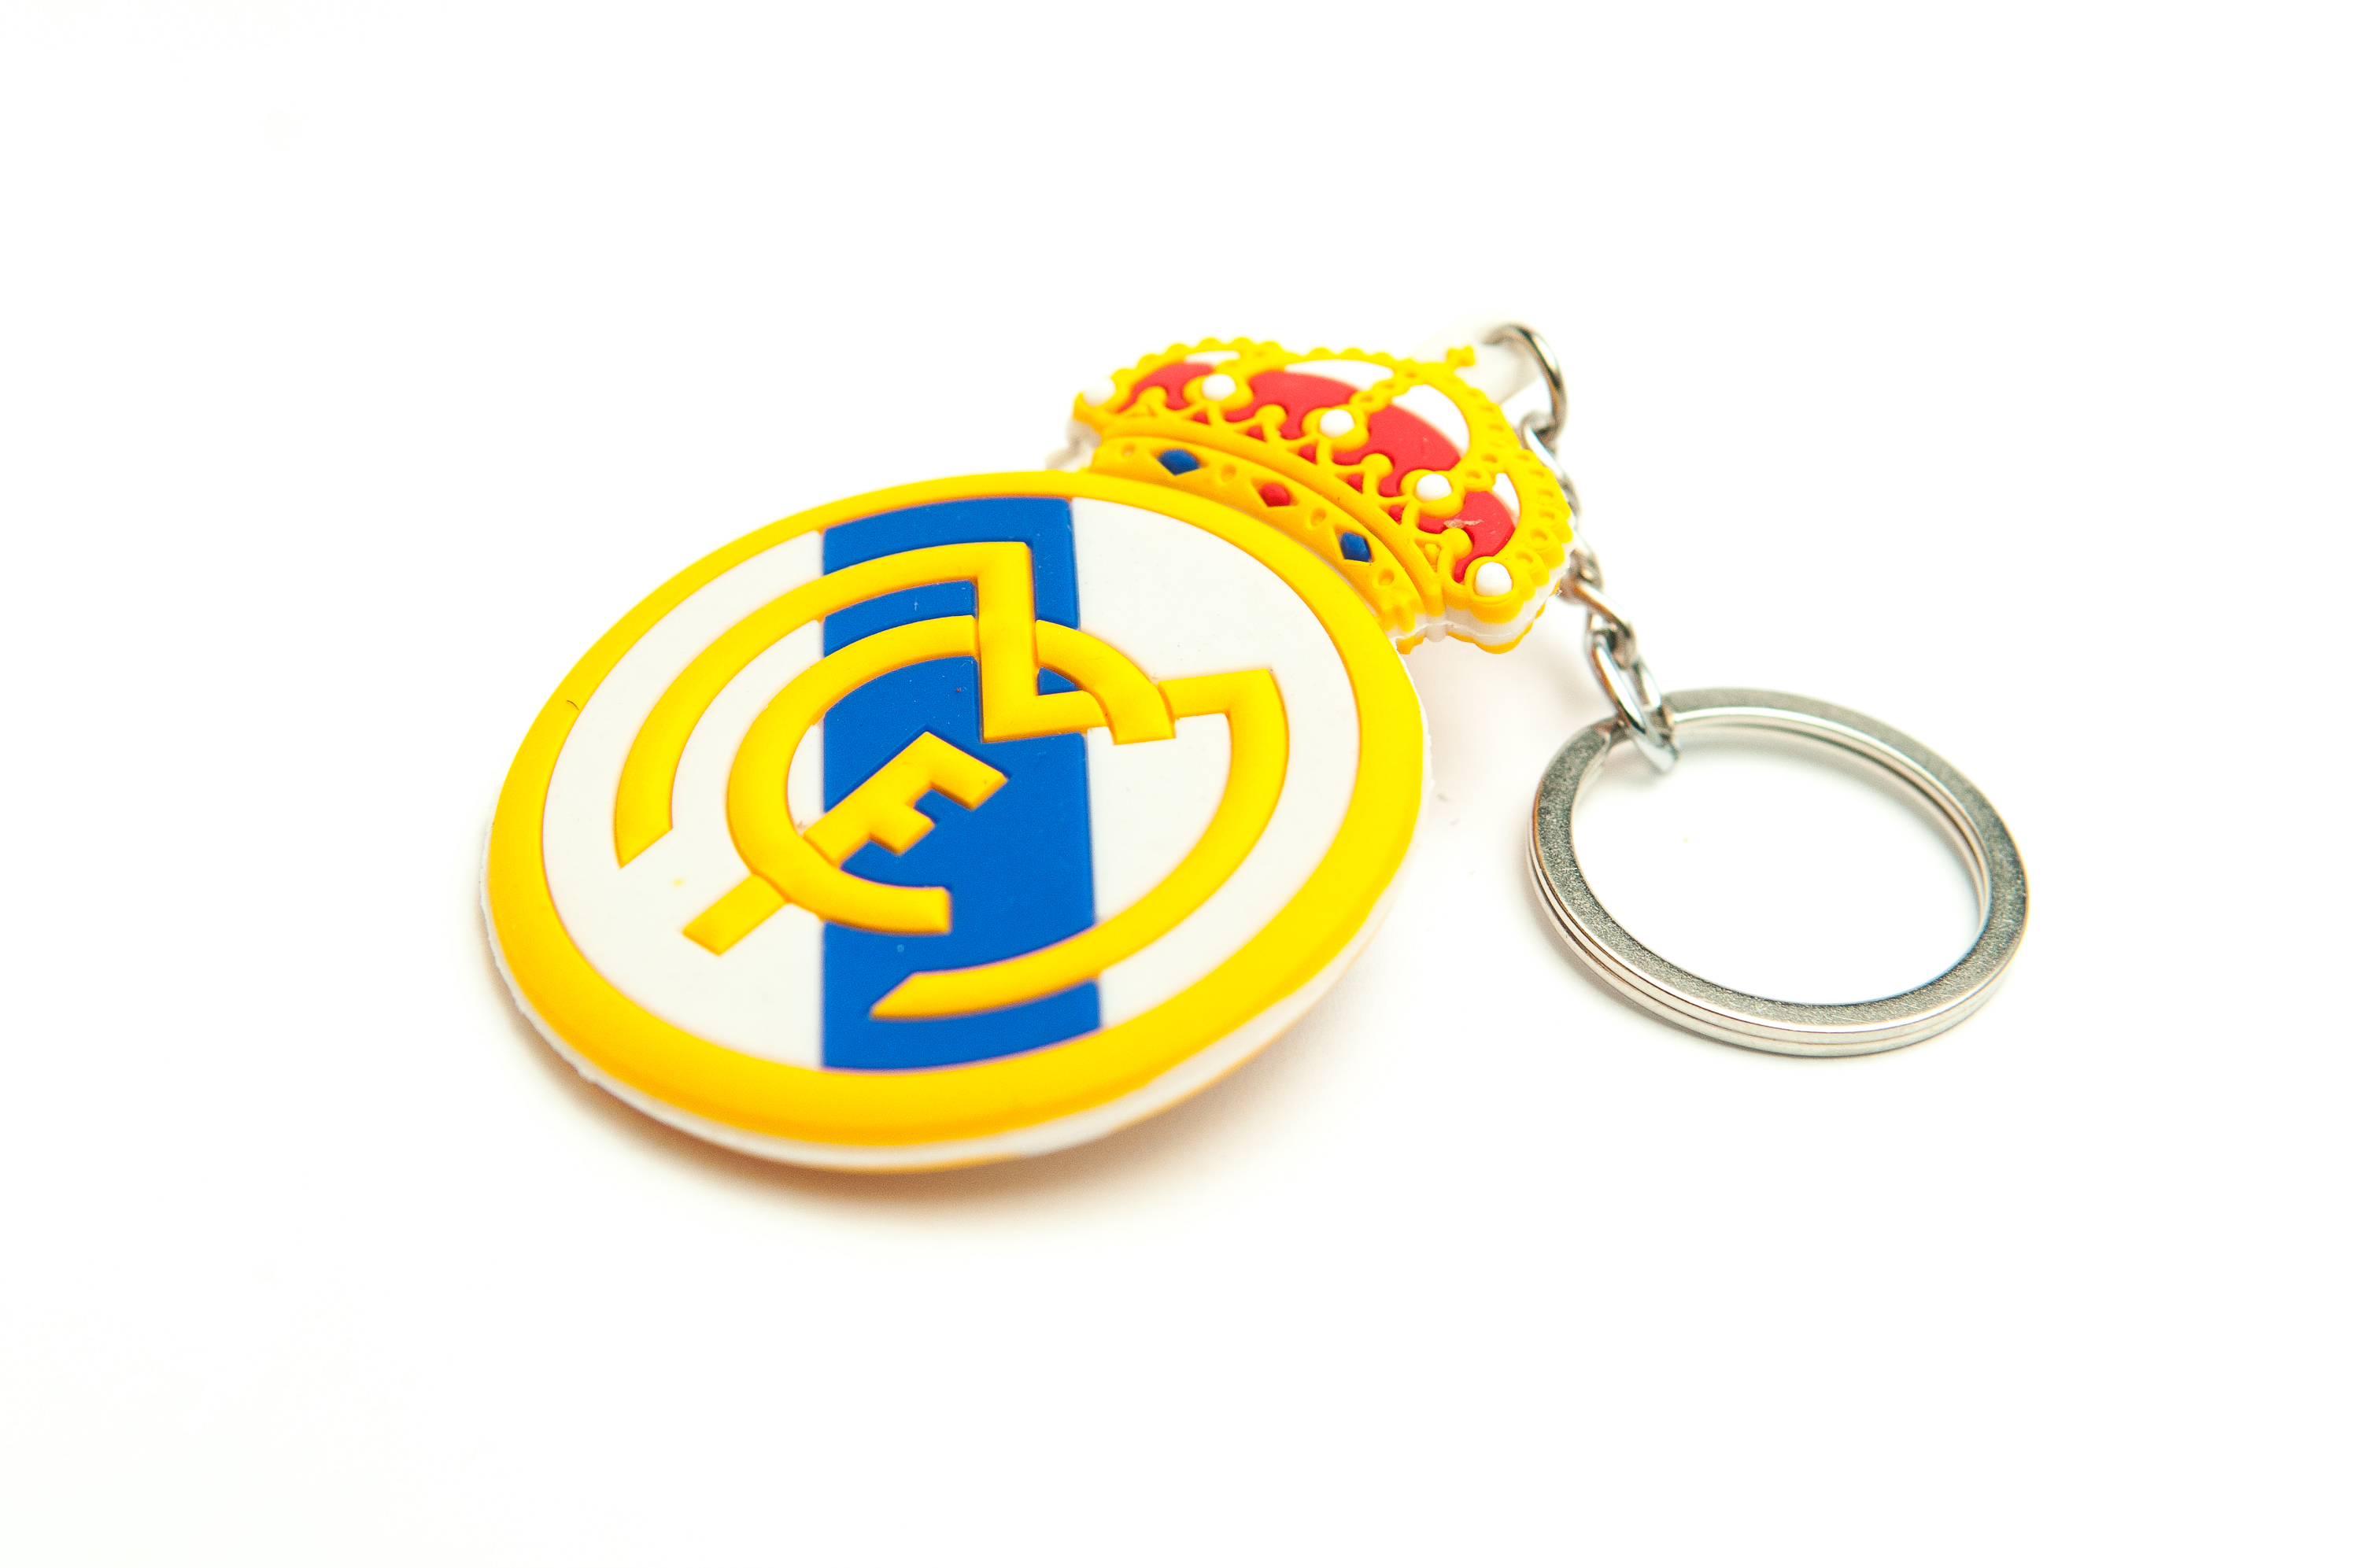 Real Madrid Football Club Keyring Kool Keyringskool Keyrings